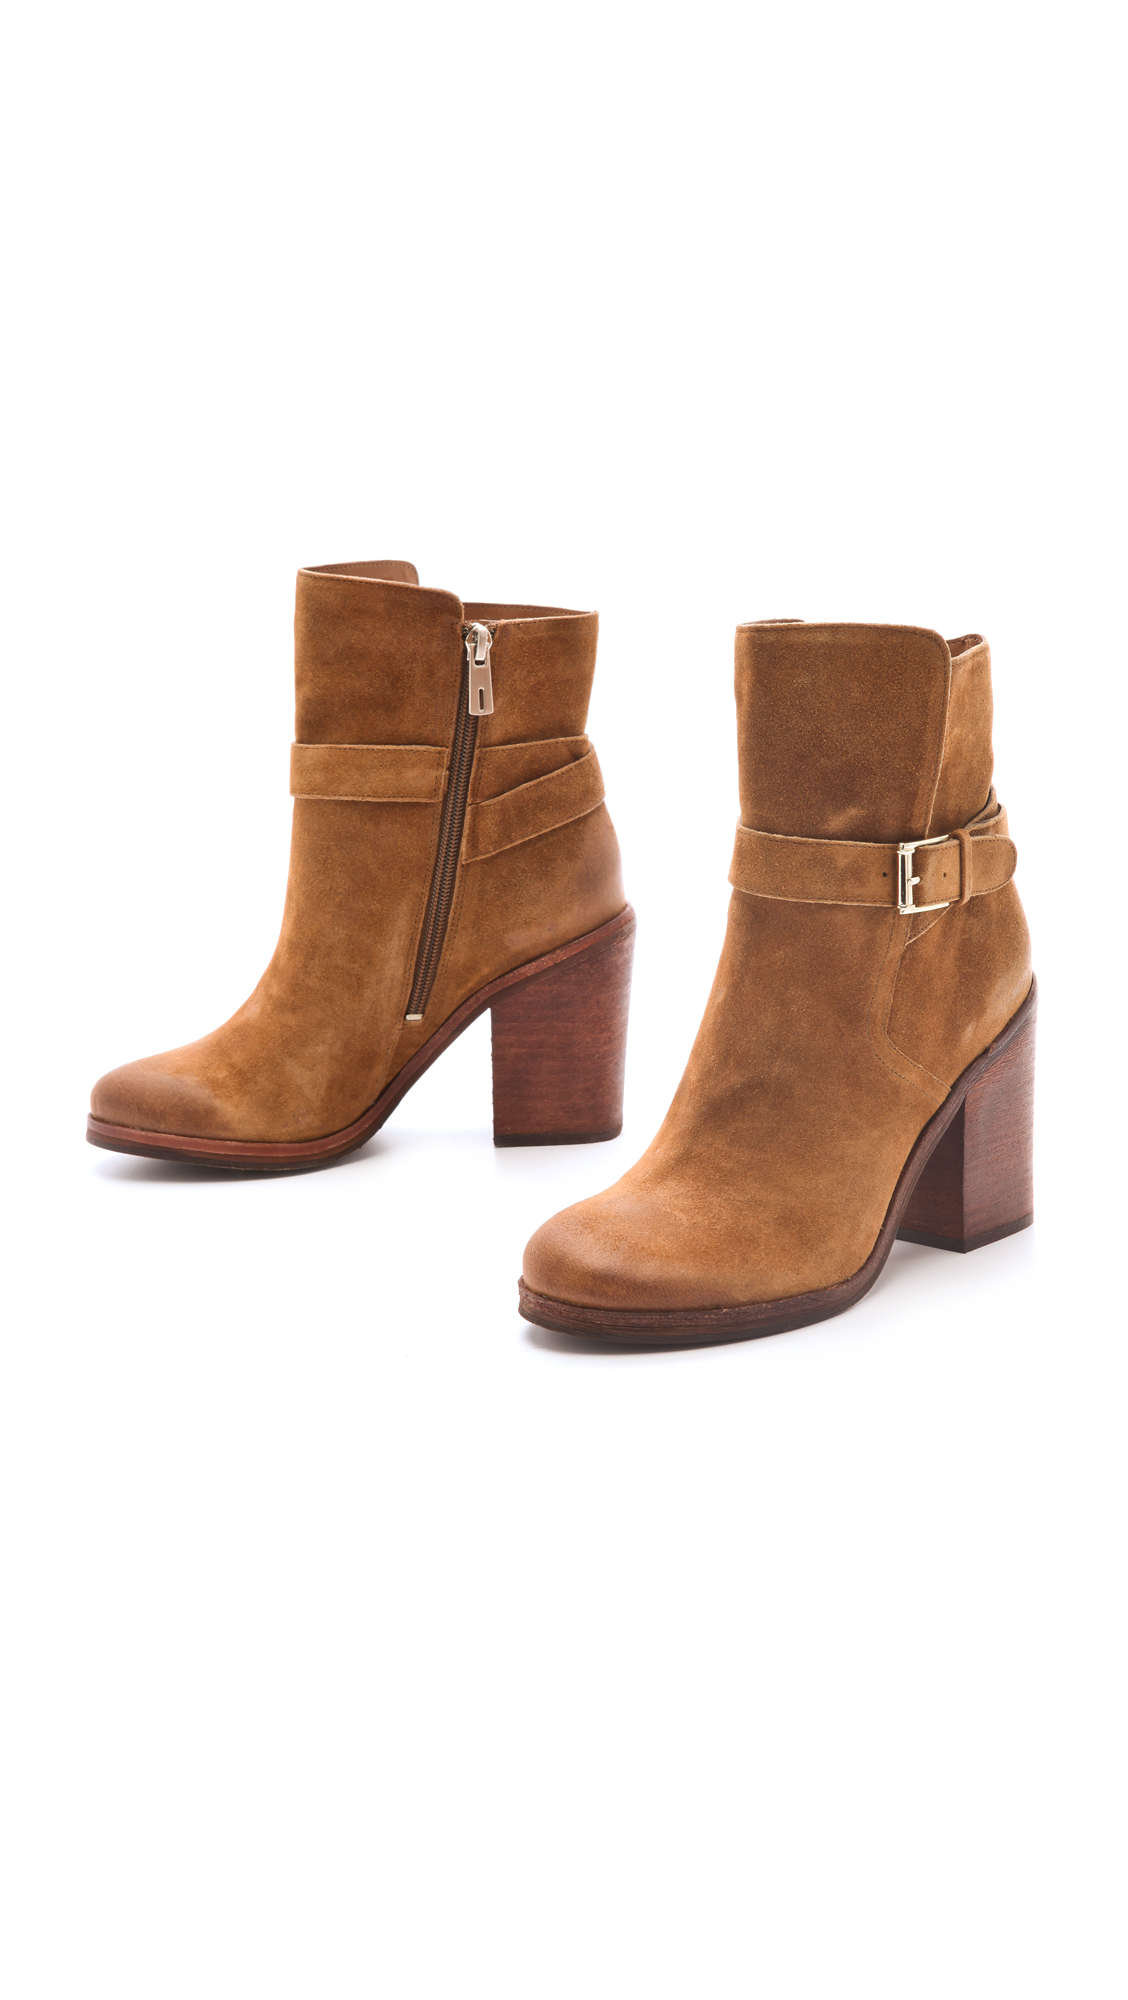 f02b2c13d88f6 Lyst - Sam Edelman Perry Wrap Strap Booties in Brown